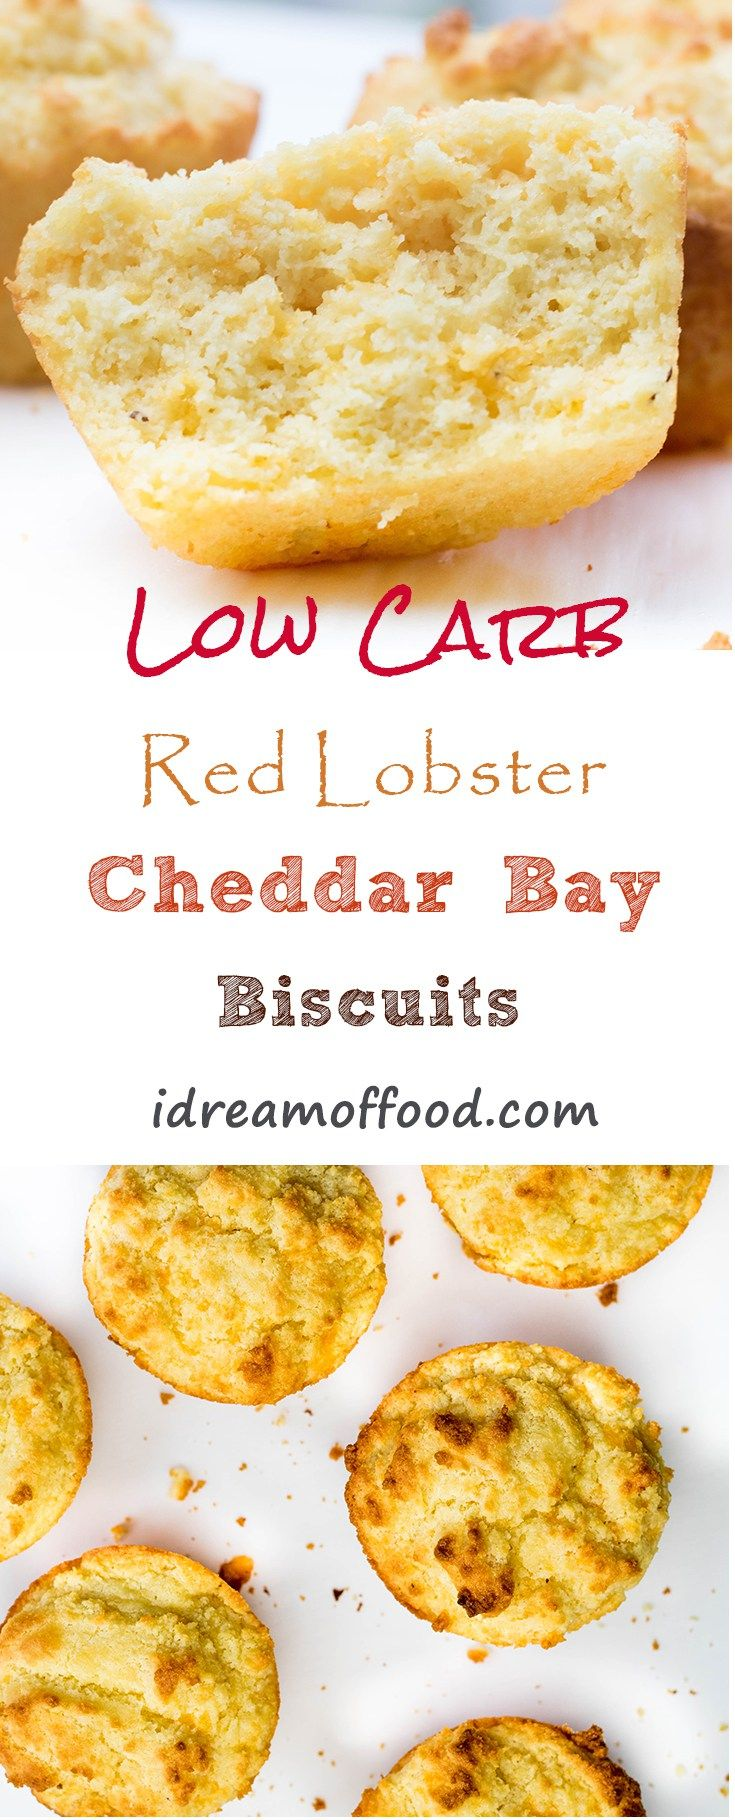 Low Carb Red Lobster Cheddar Bay Biscuits. Moist and delicious low-carb biscuits/muffins with all the flavors of Red Lobster Cheddar Bay biscuits. I guarantee no one will be able to tell these aren't a high-carb bread. These muffins are perfect for a ketogenic diet and lifestyle. LCHF, Atkins, Banting, Low Carb,